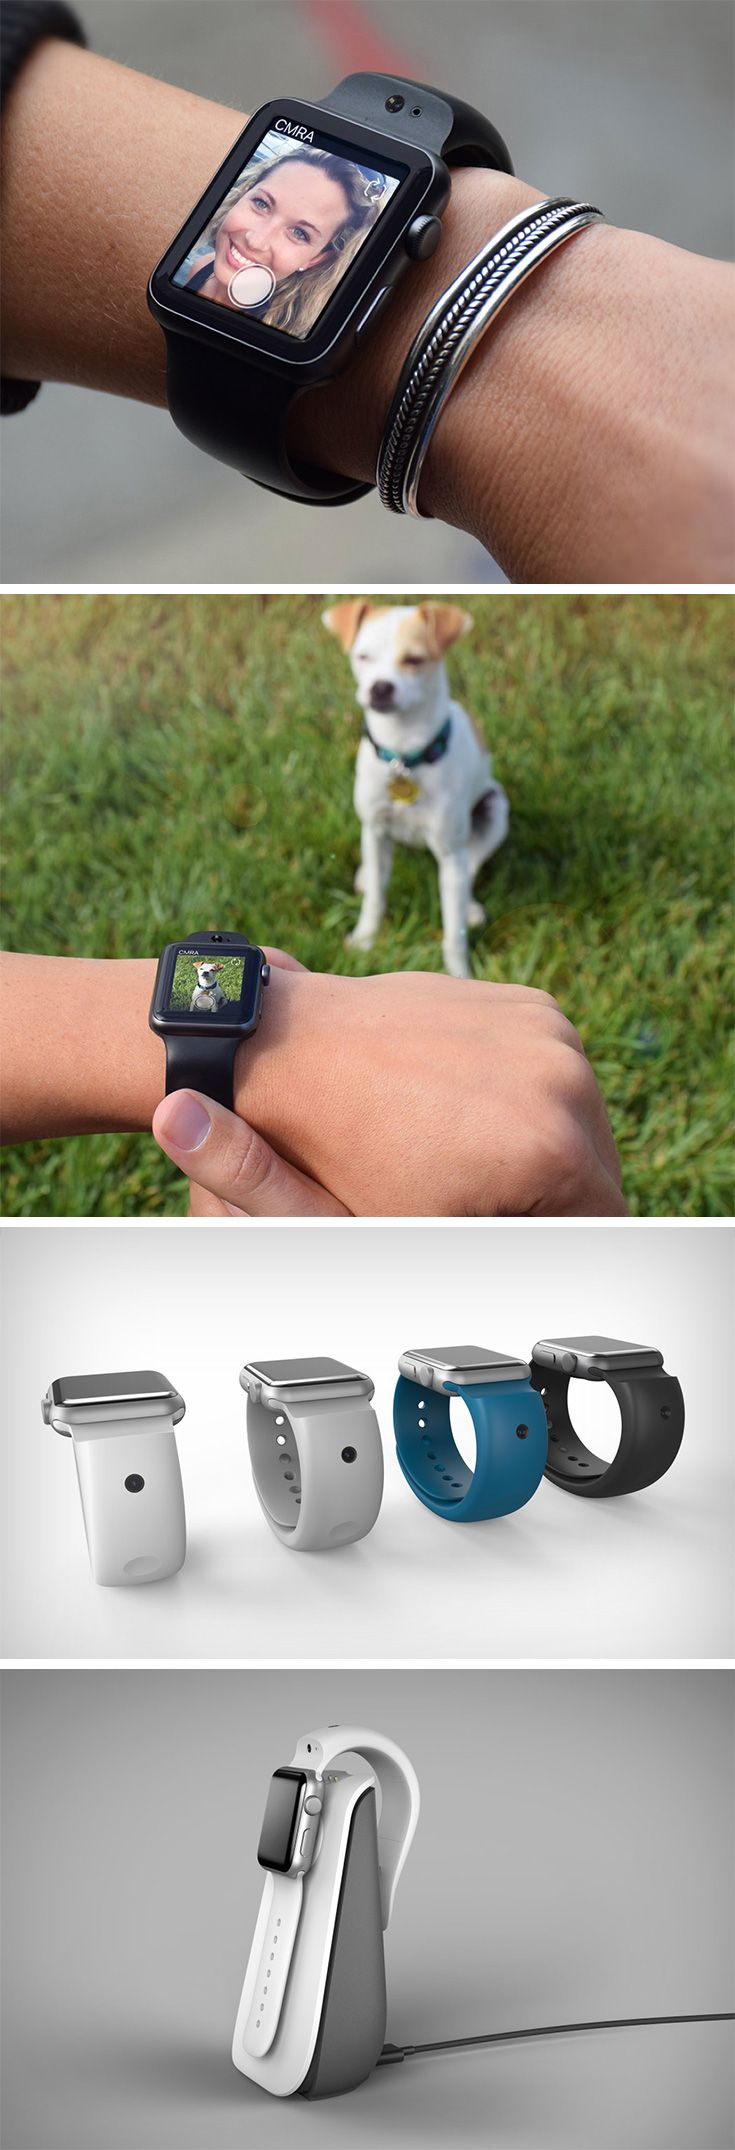 The CMRA strap puts not one, but TWO cameras on the strap of the Apple Watch! Positioned in a front/back configuration, the strap can either film you, or what's going on in front of you. The CMRA strap comes with 24-hr batteries of its own, so never fear. Both cameras are HD enabled and LED lights shine up to notify you if the camera is in use.